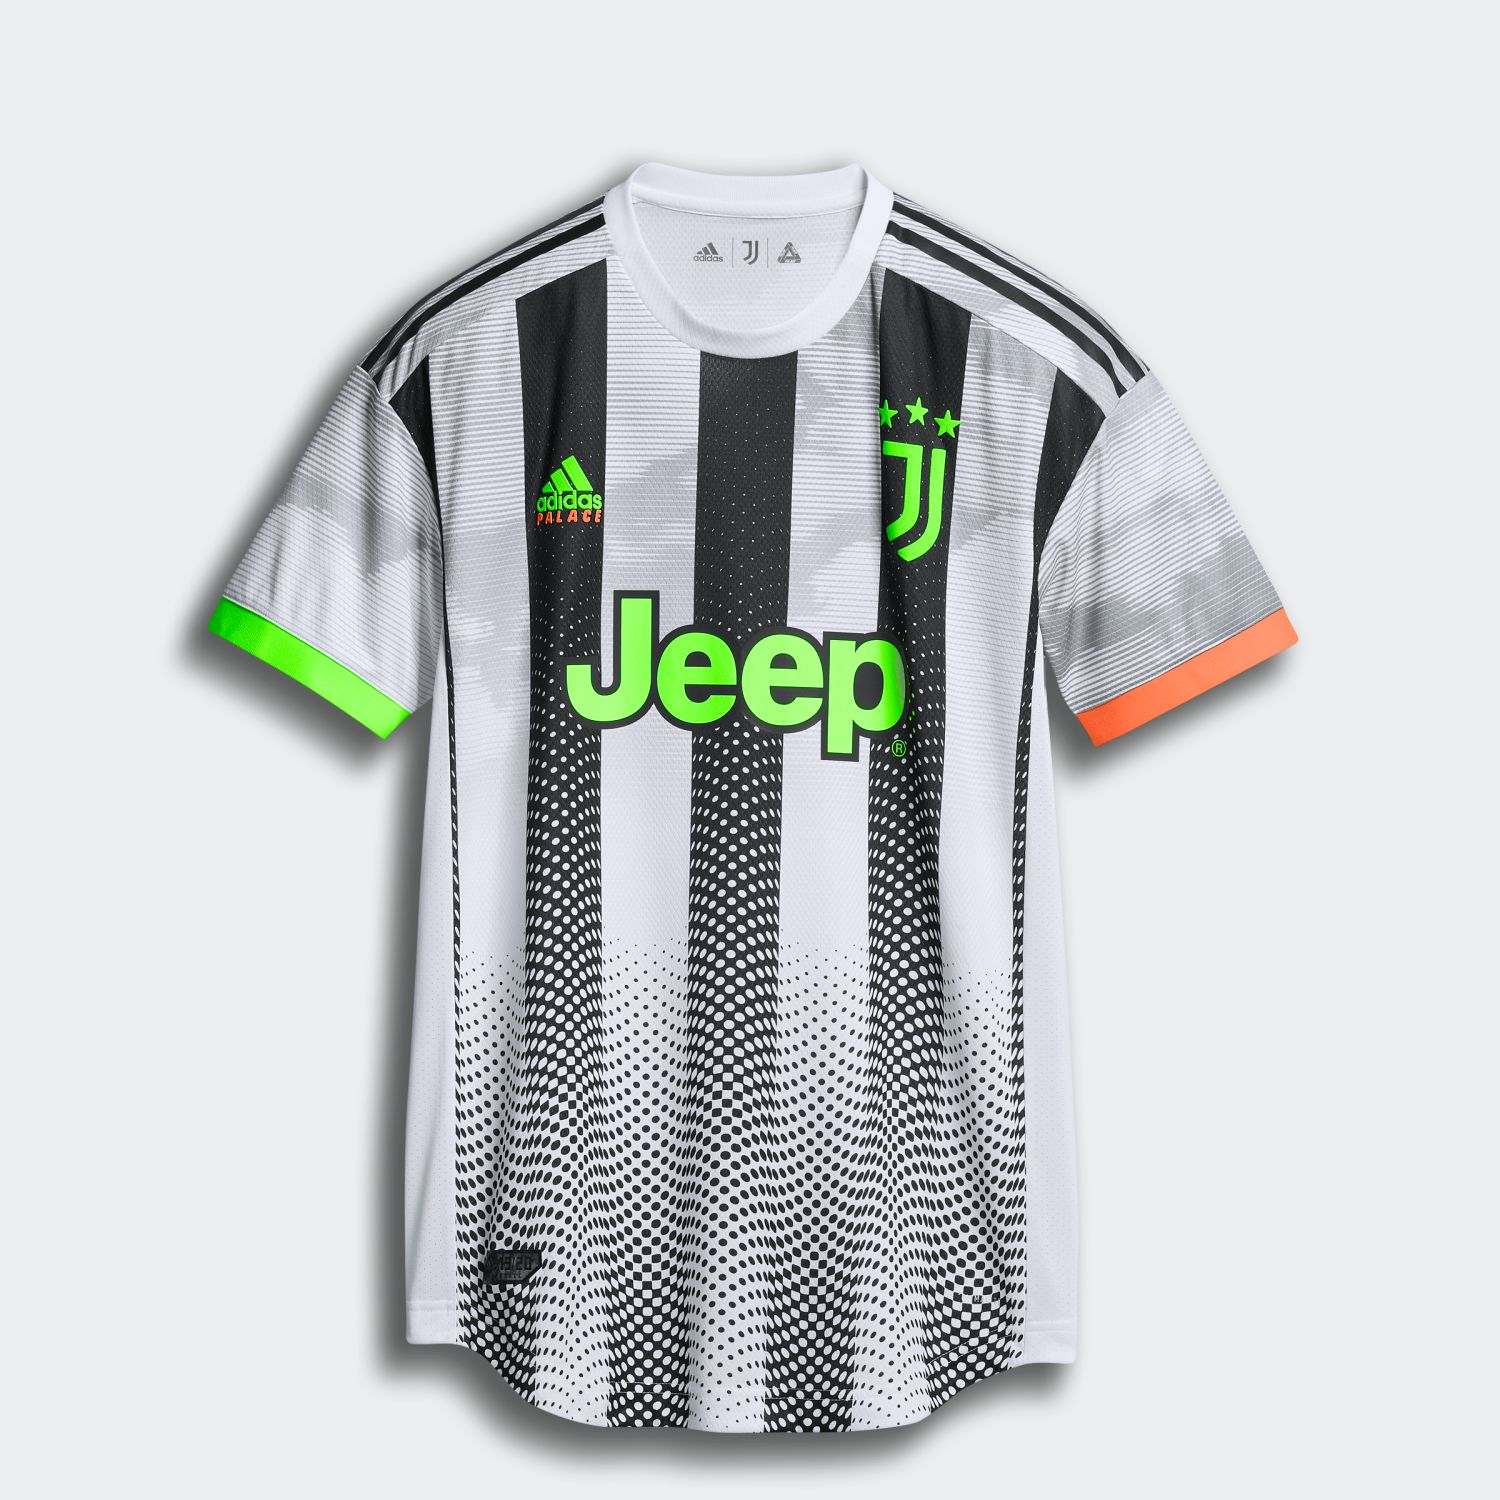 palace-skateboards-juventus-fc-adidas-collaboration-release-20191109